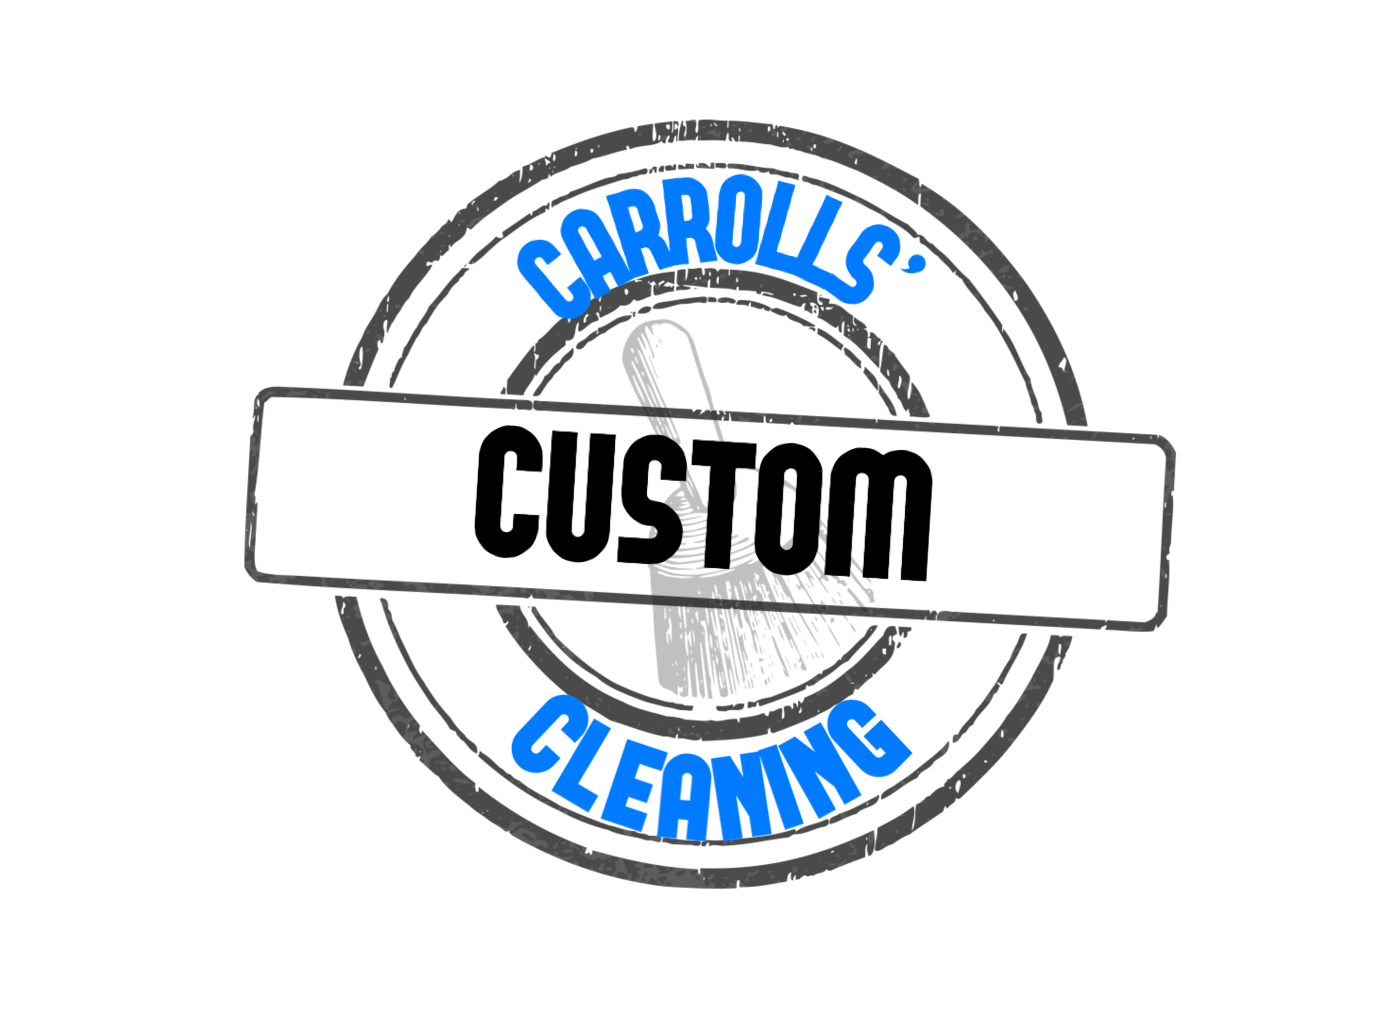 CARROLLS' CUSTOM CLEANING